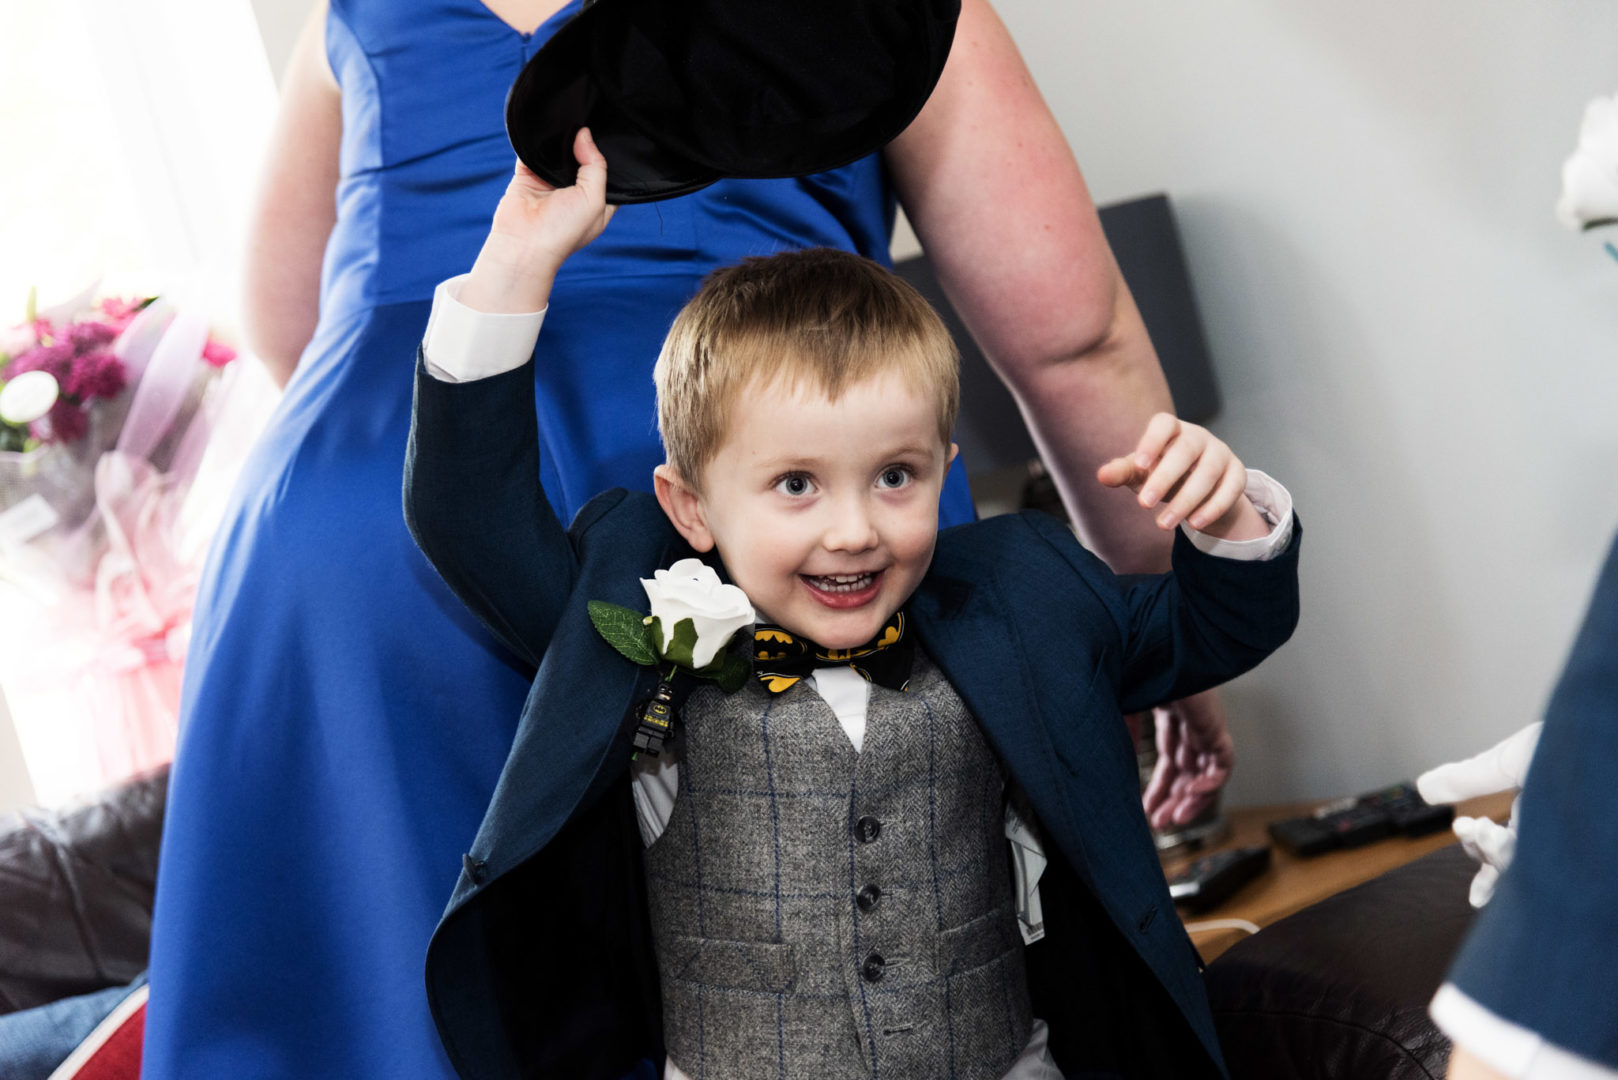 Nuneaton Bedworth Warwickshire wedding photographer AJTImages  Dudley Registry Office star wars  doctor who wedding photography